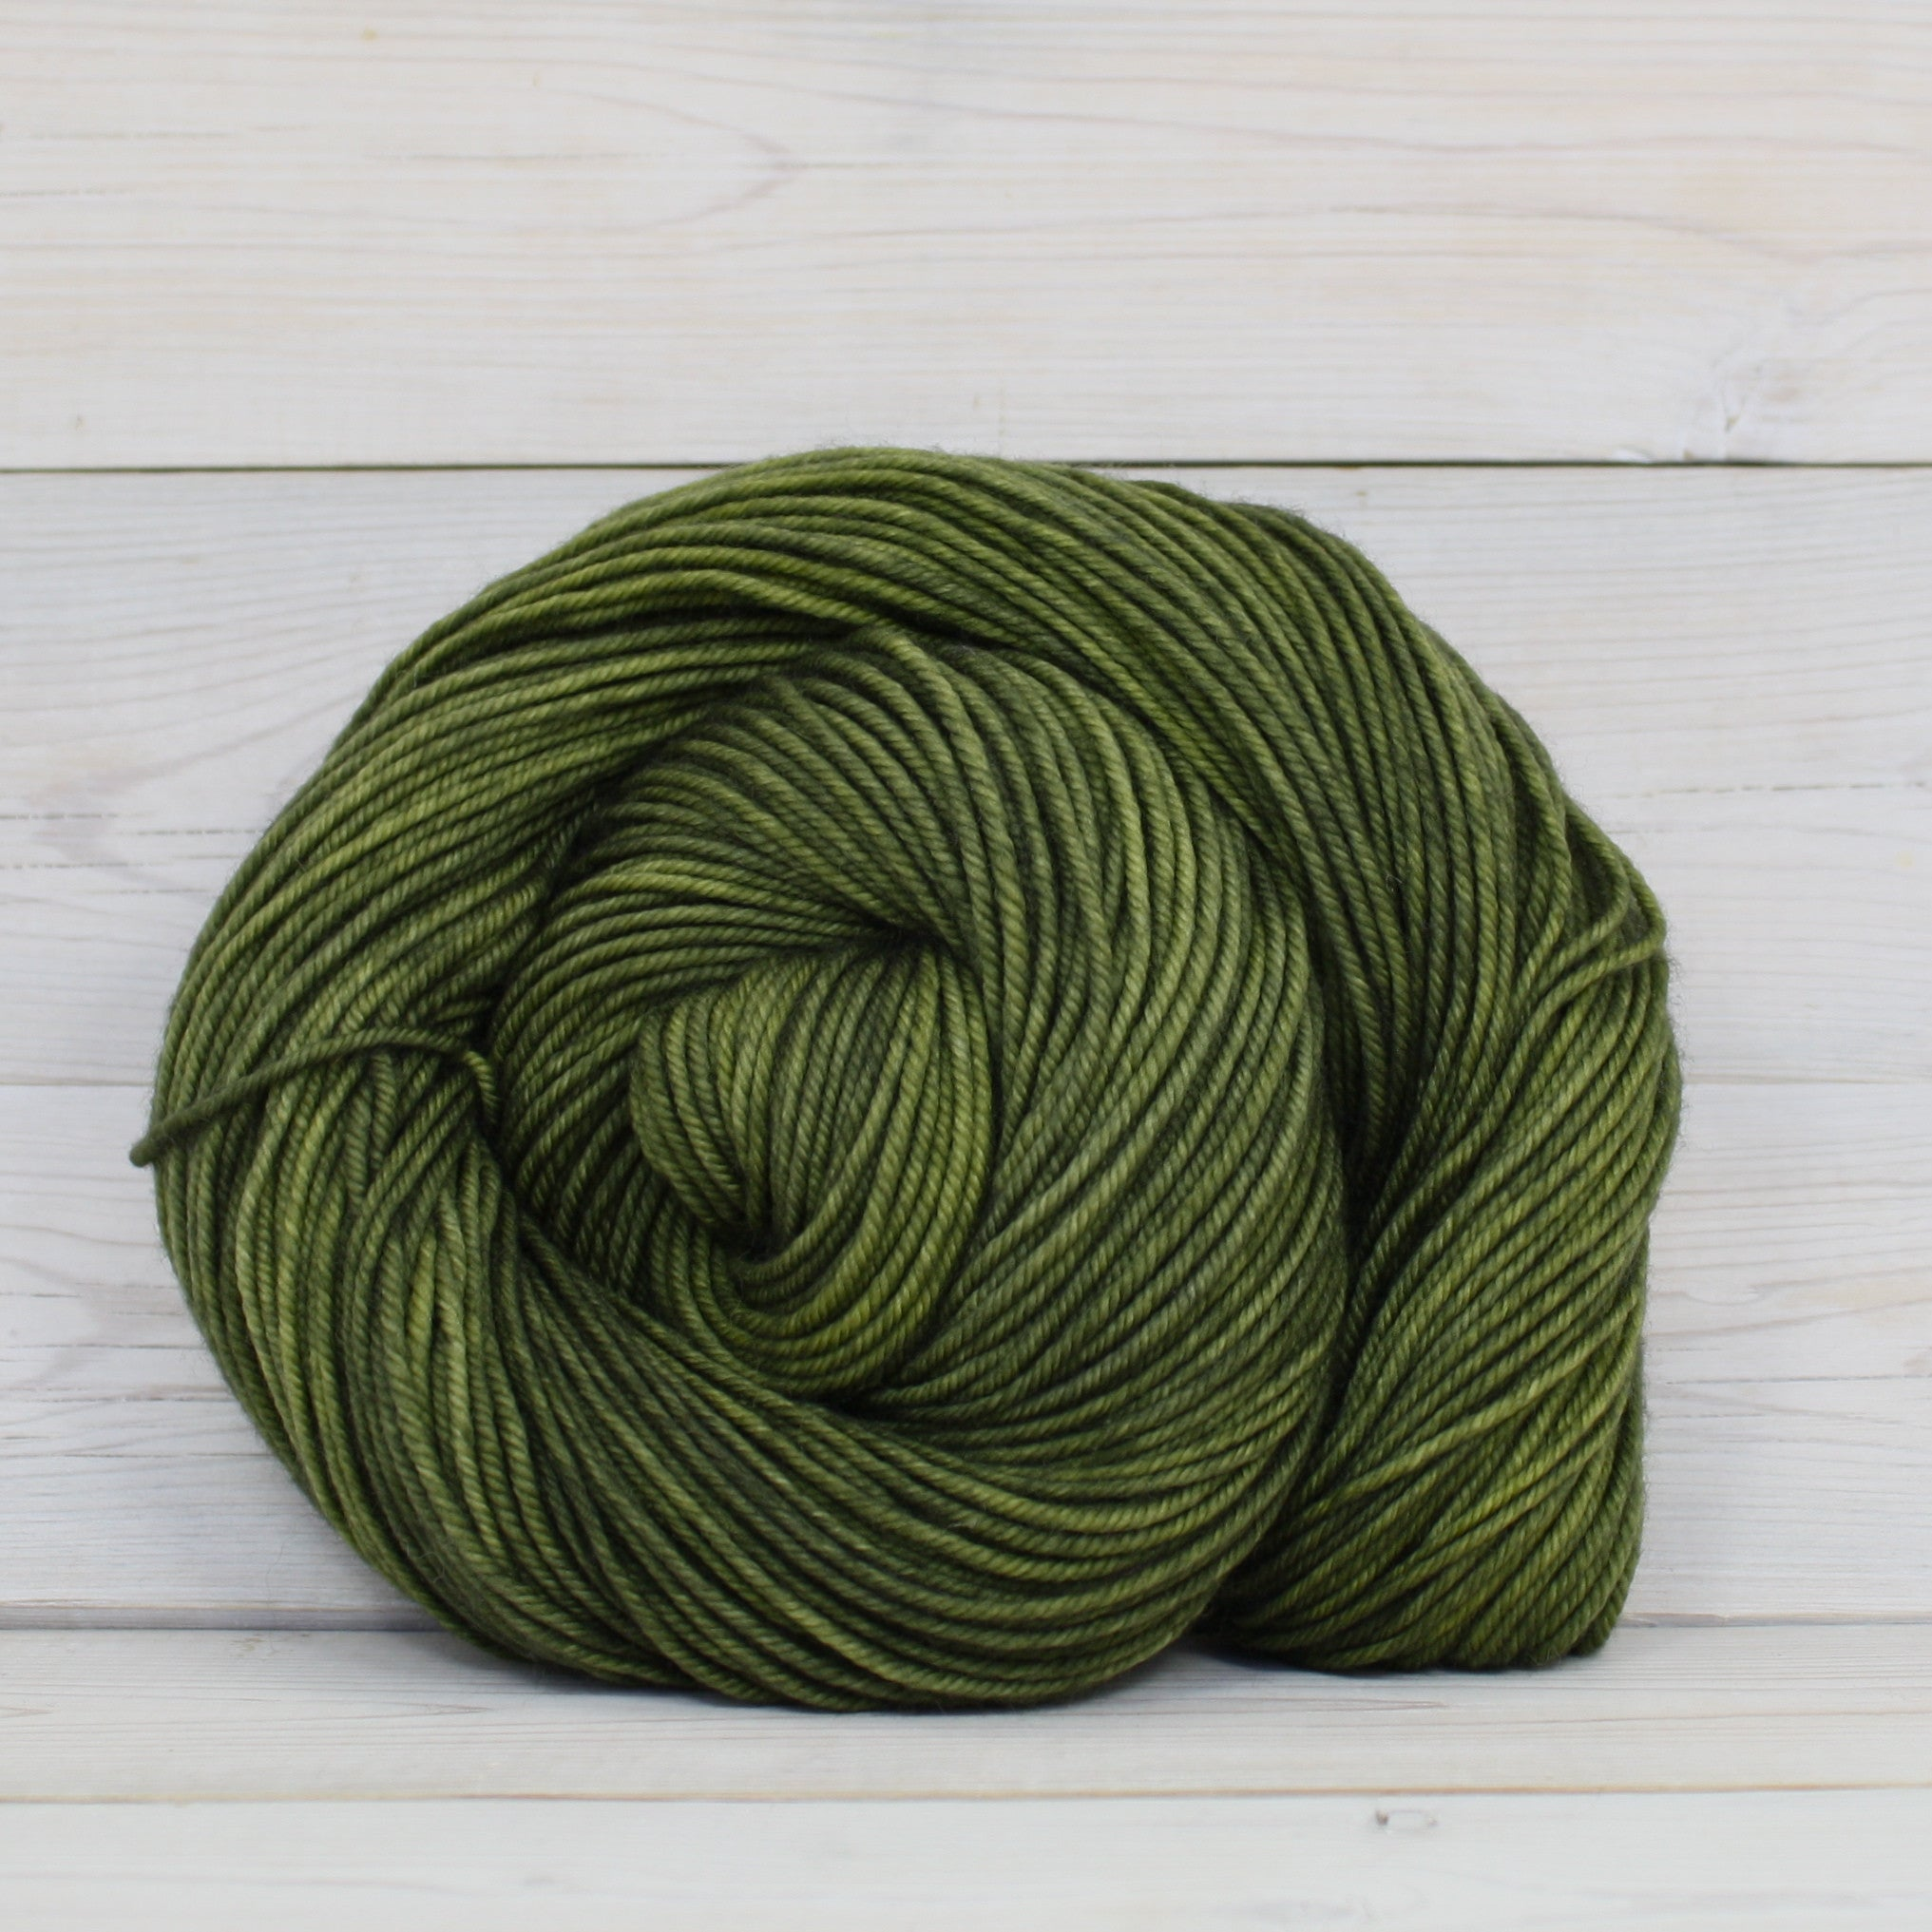 Luna Grey Fiber Arts Calypso Yarn | Colorway: Bracken Fern